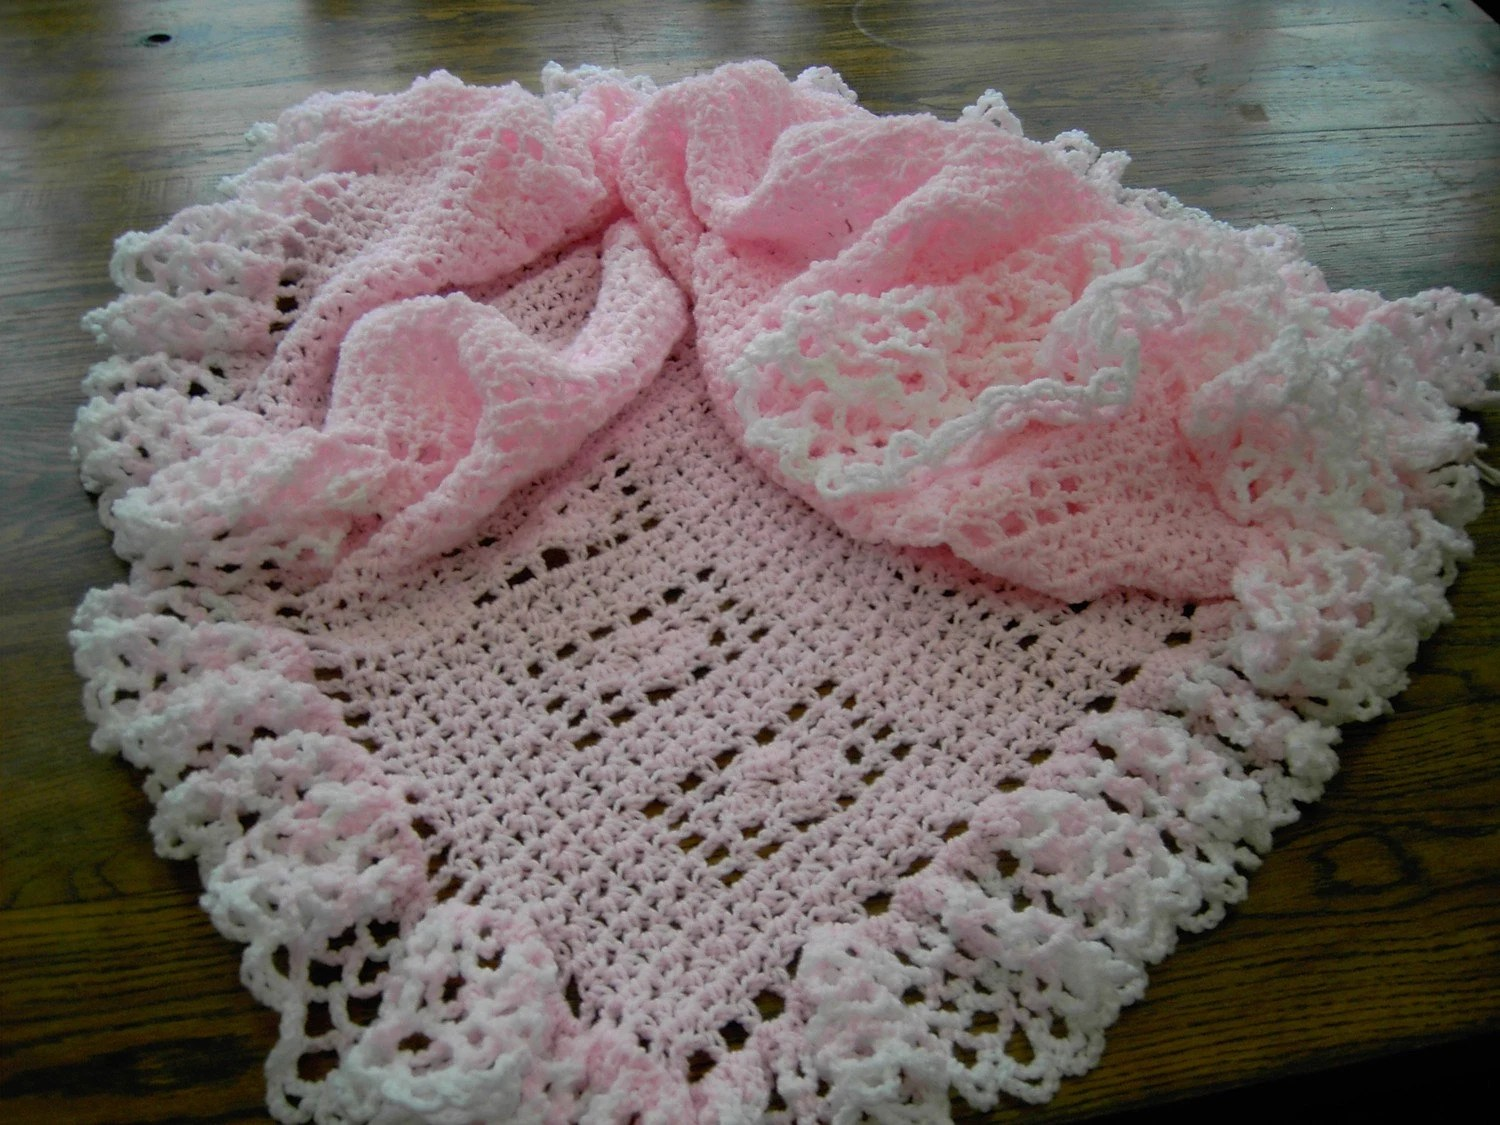 New handmade pink lace style crochet blanket with full white and pink delicate edge  450